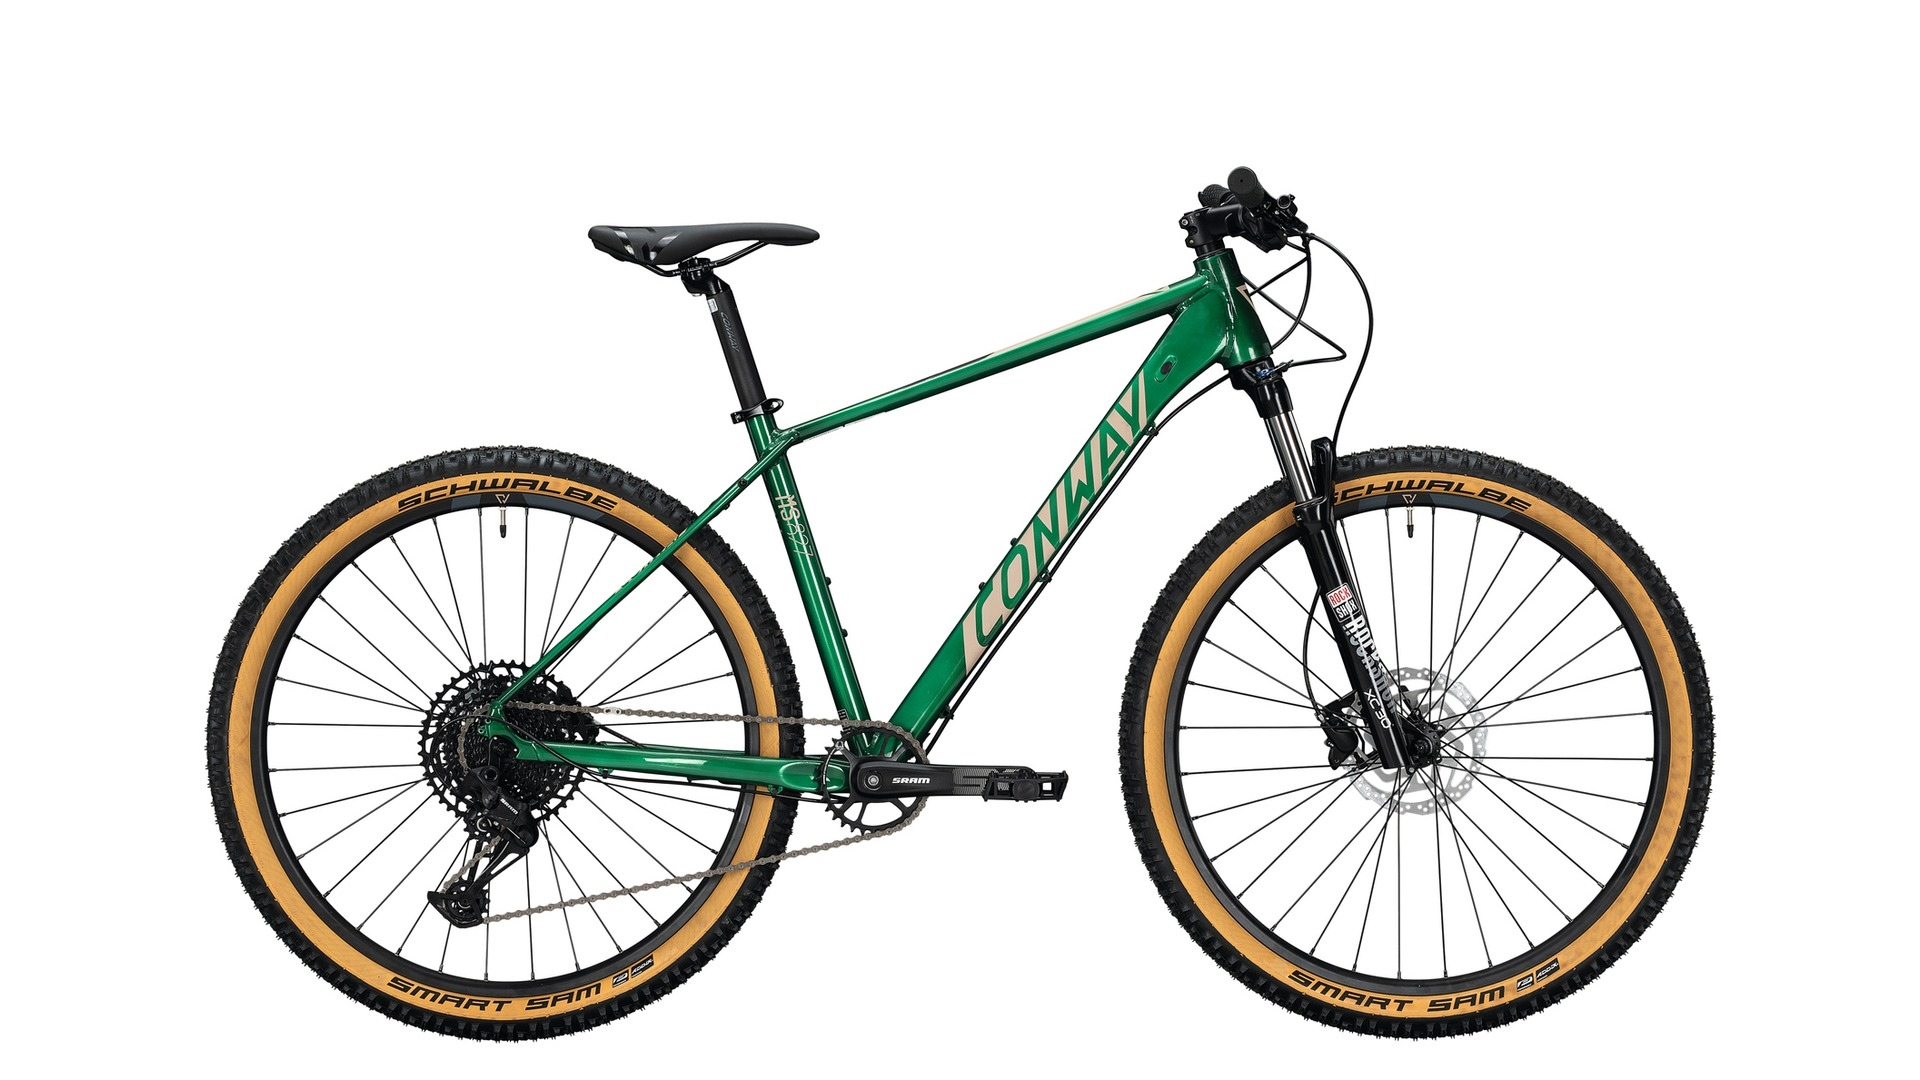 2020 conway ms827 forest-tan sram eagle sx 12